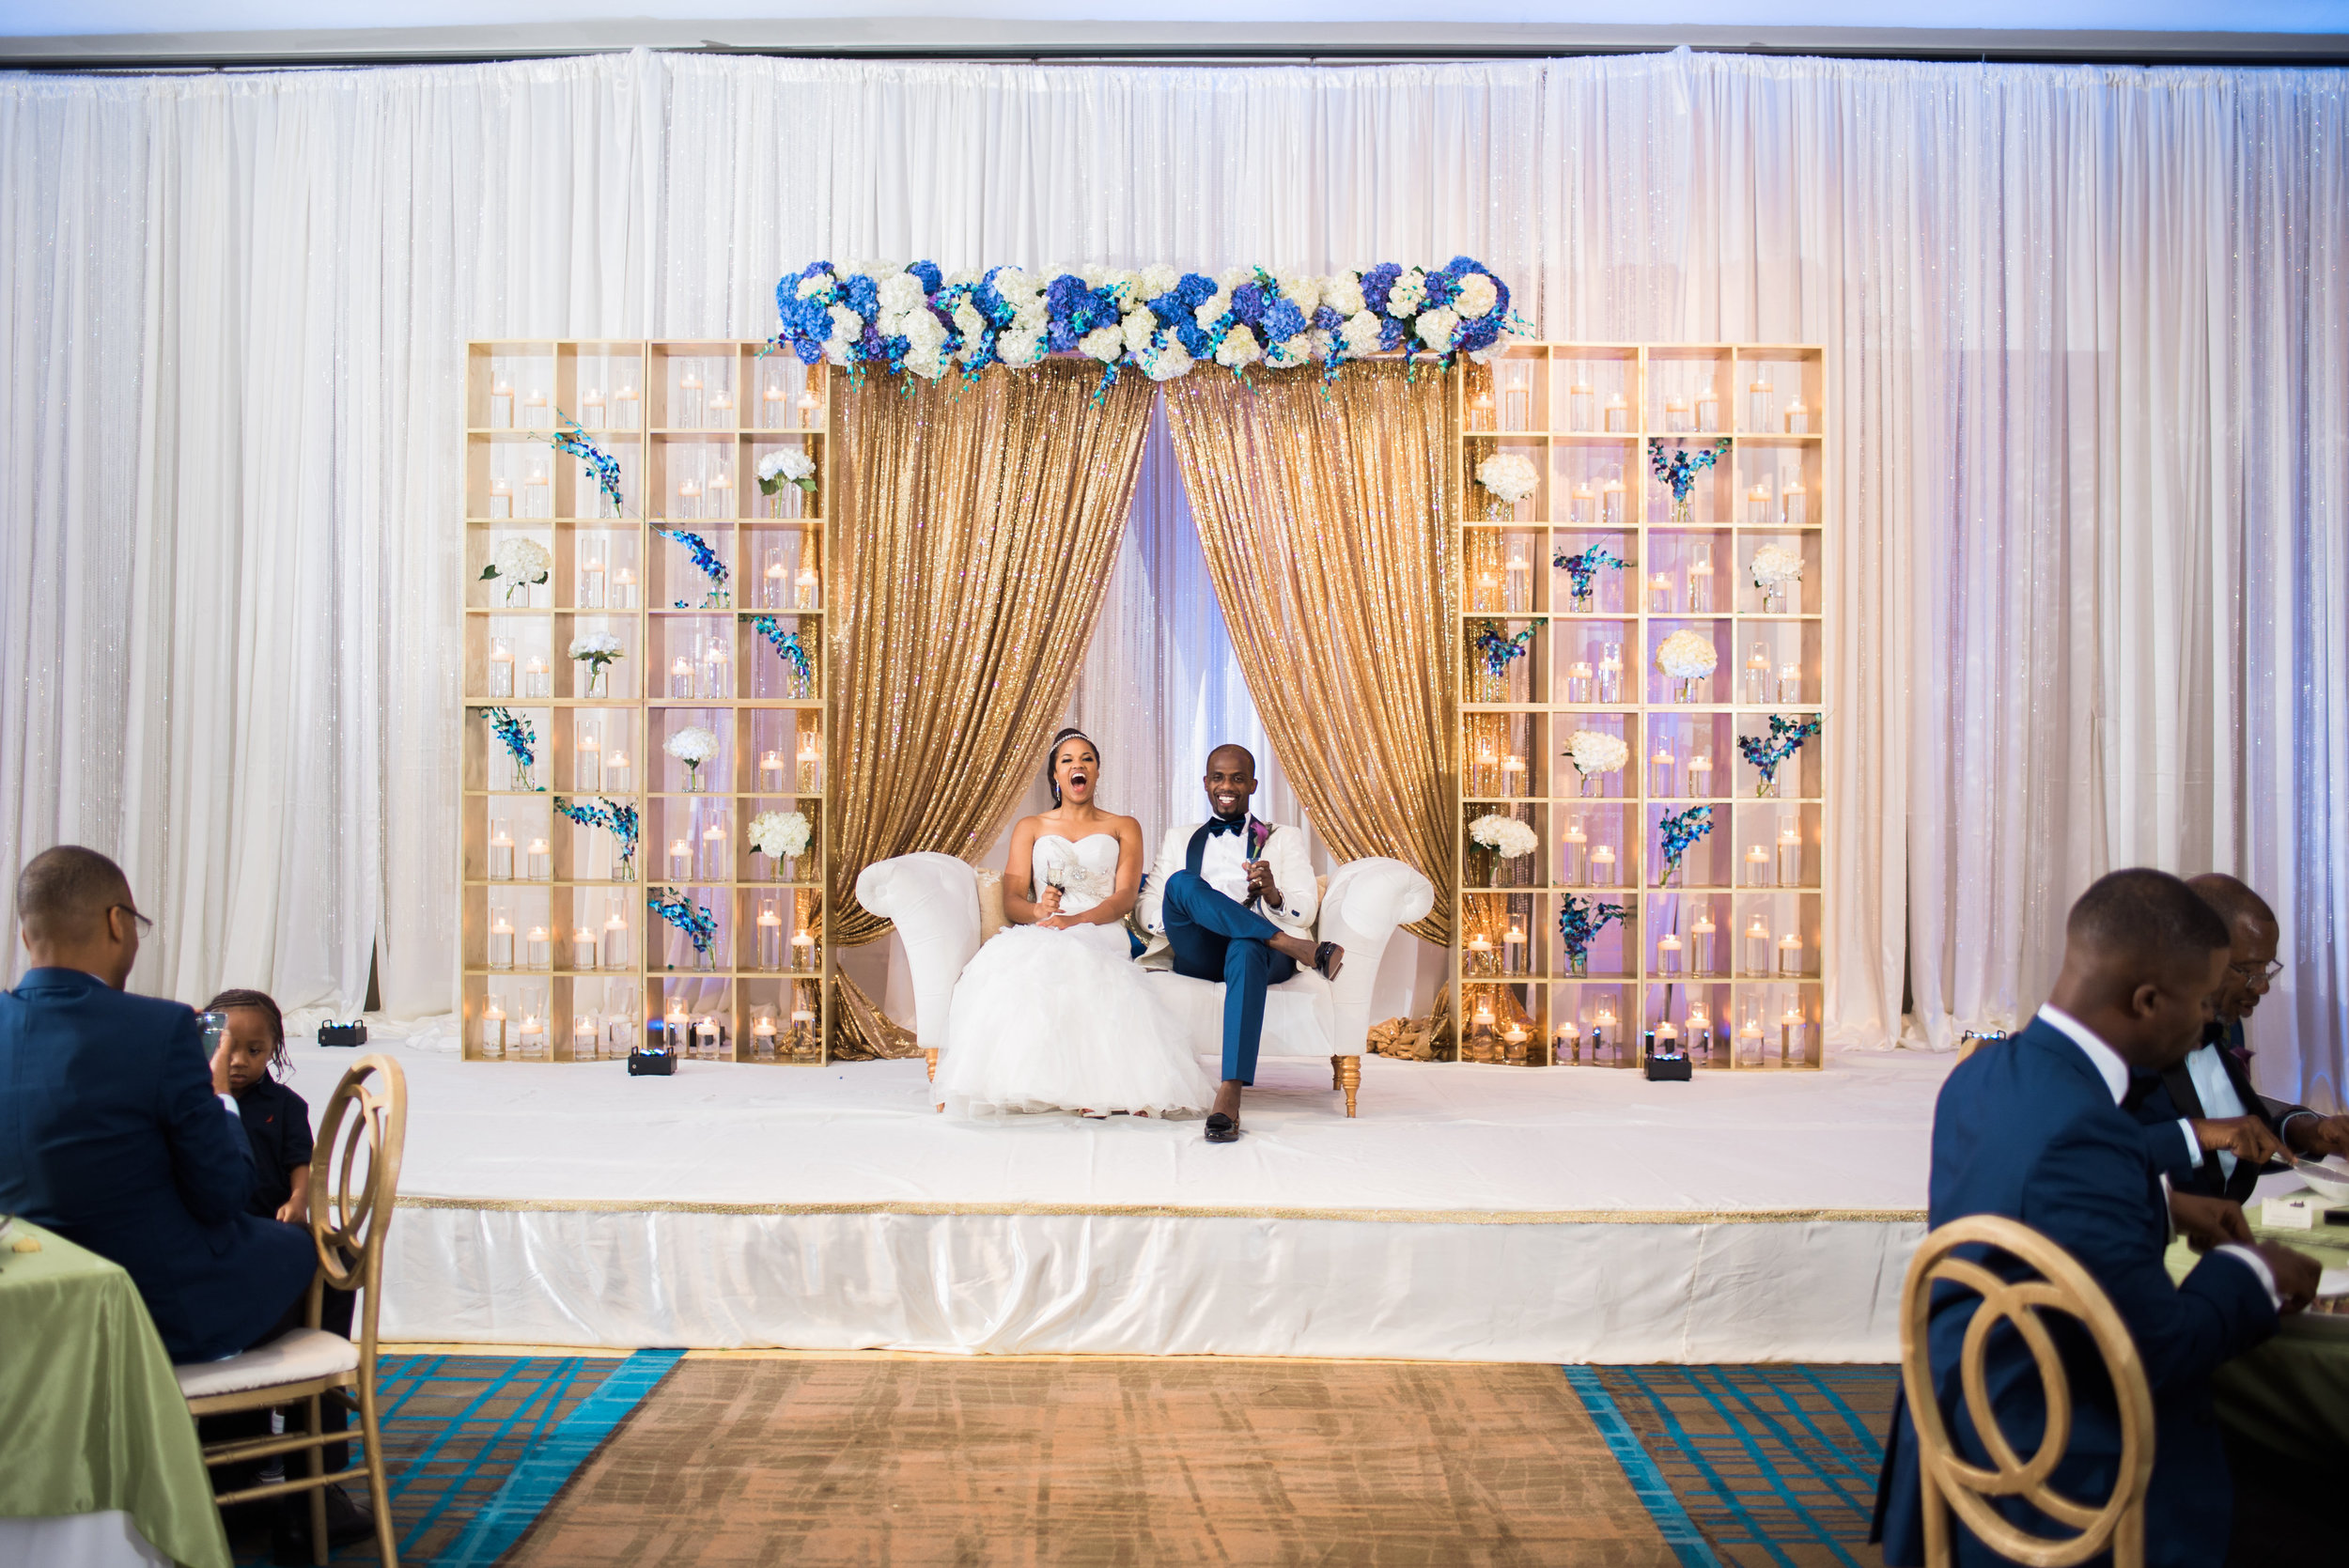 ImperialDecor - Wedding Design - Peacock Theme